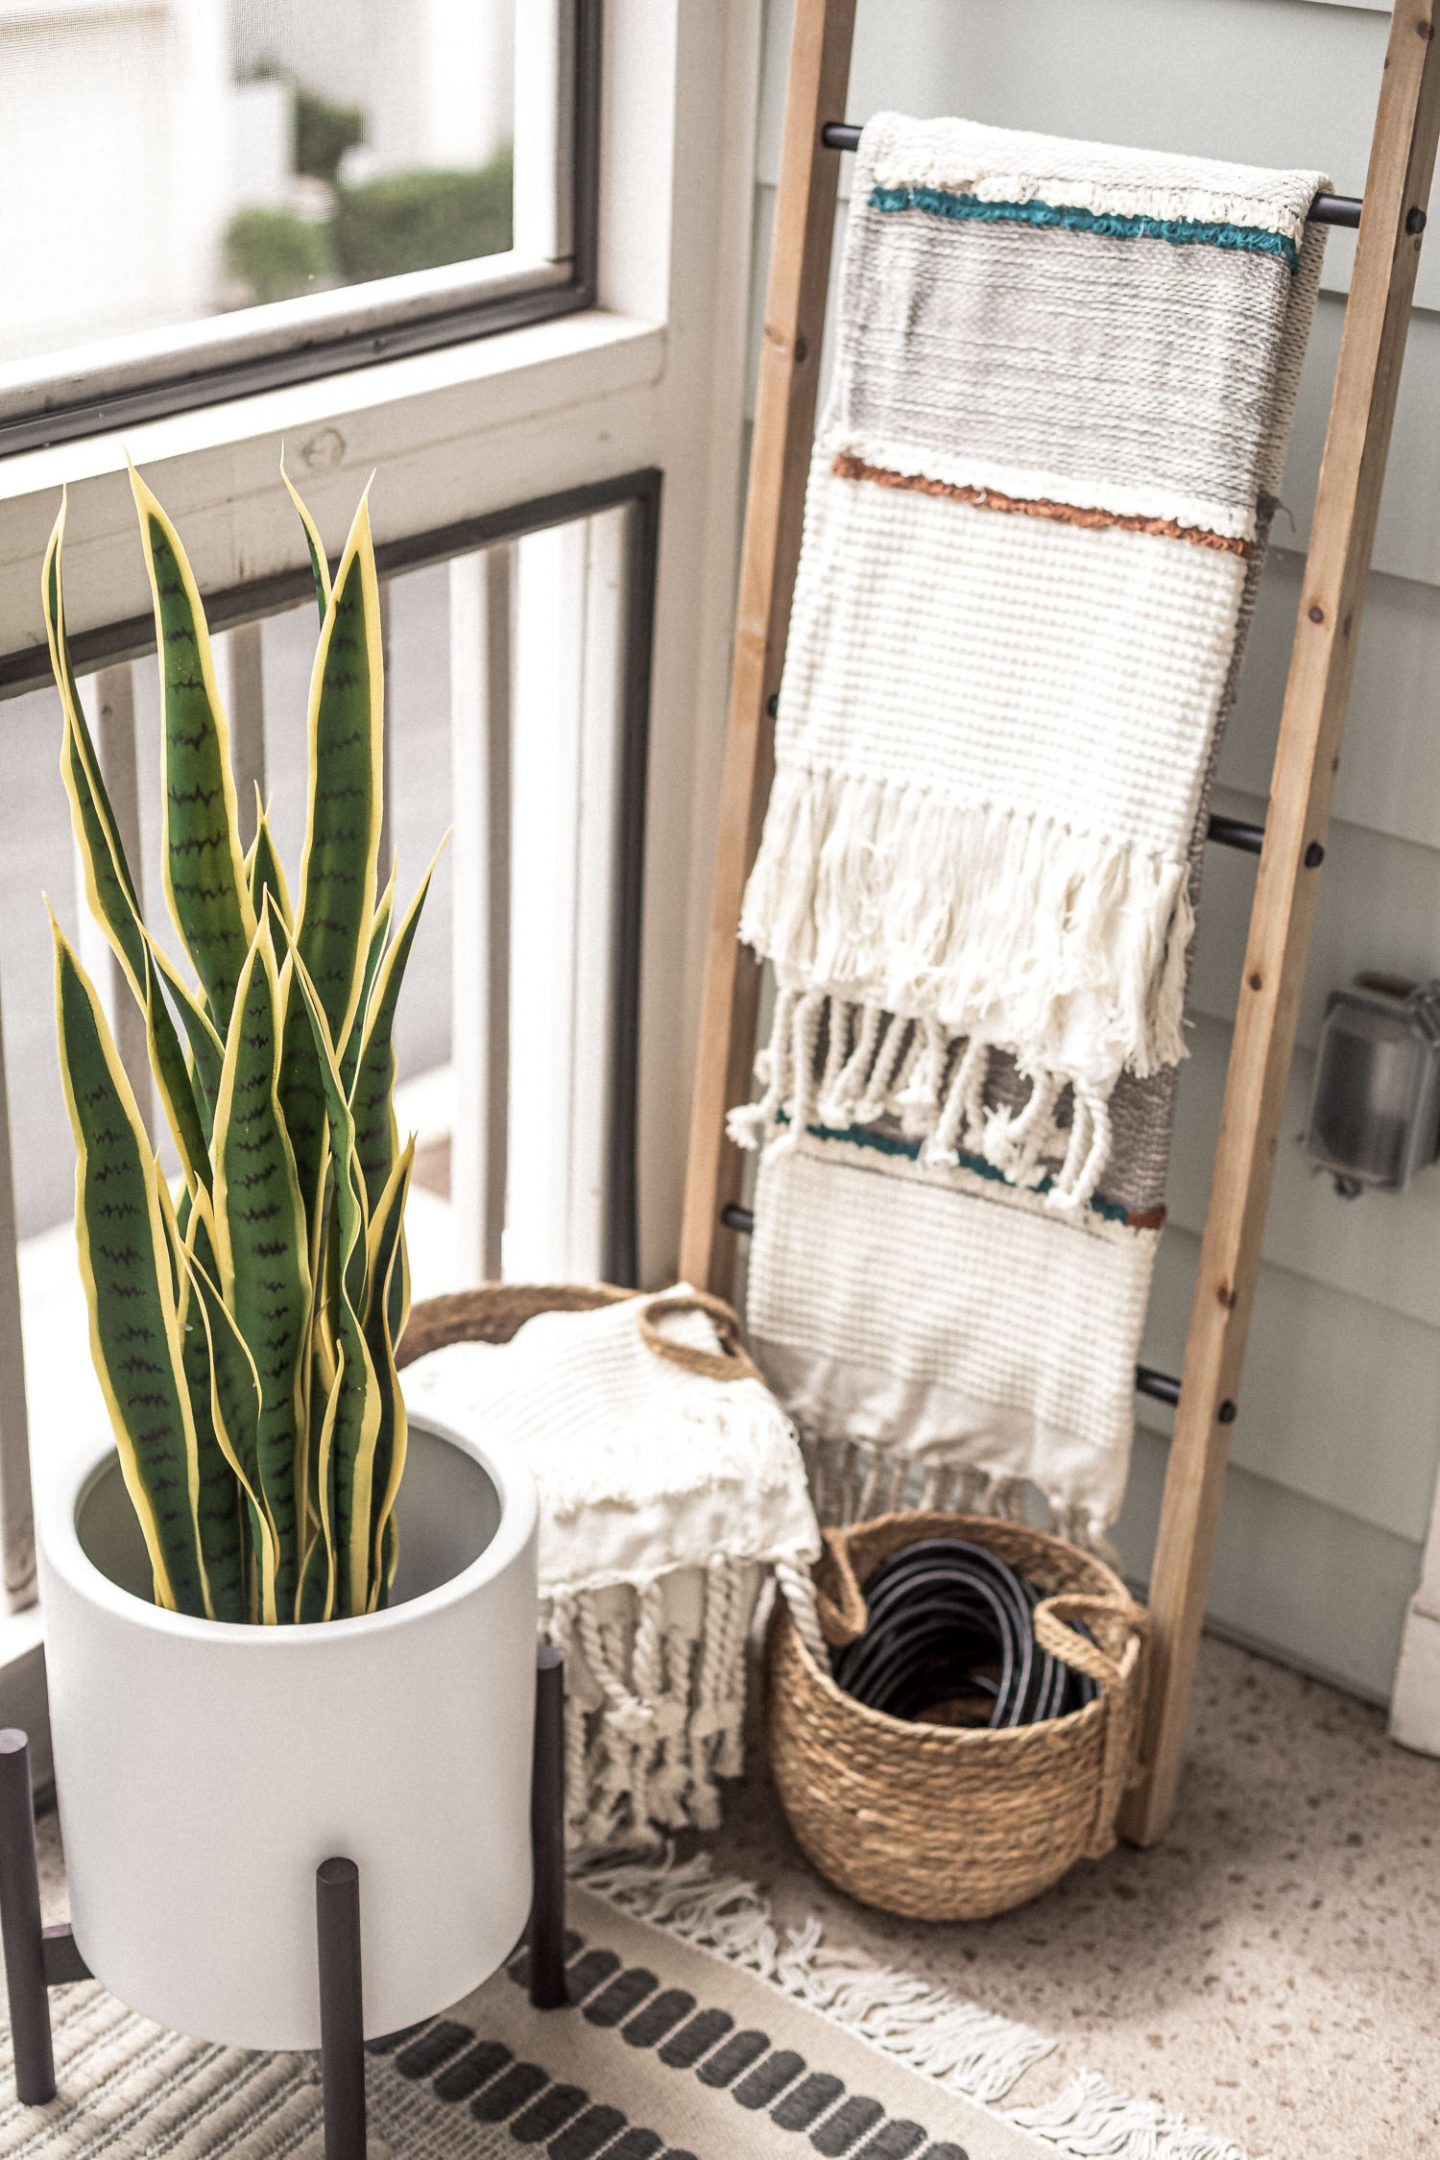 planter from amazon home, blanket ladder, decorative ladder, small basket, how to hid appliances